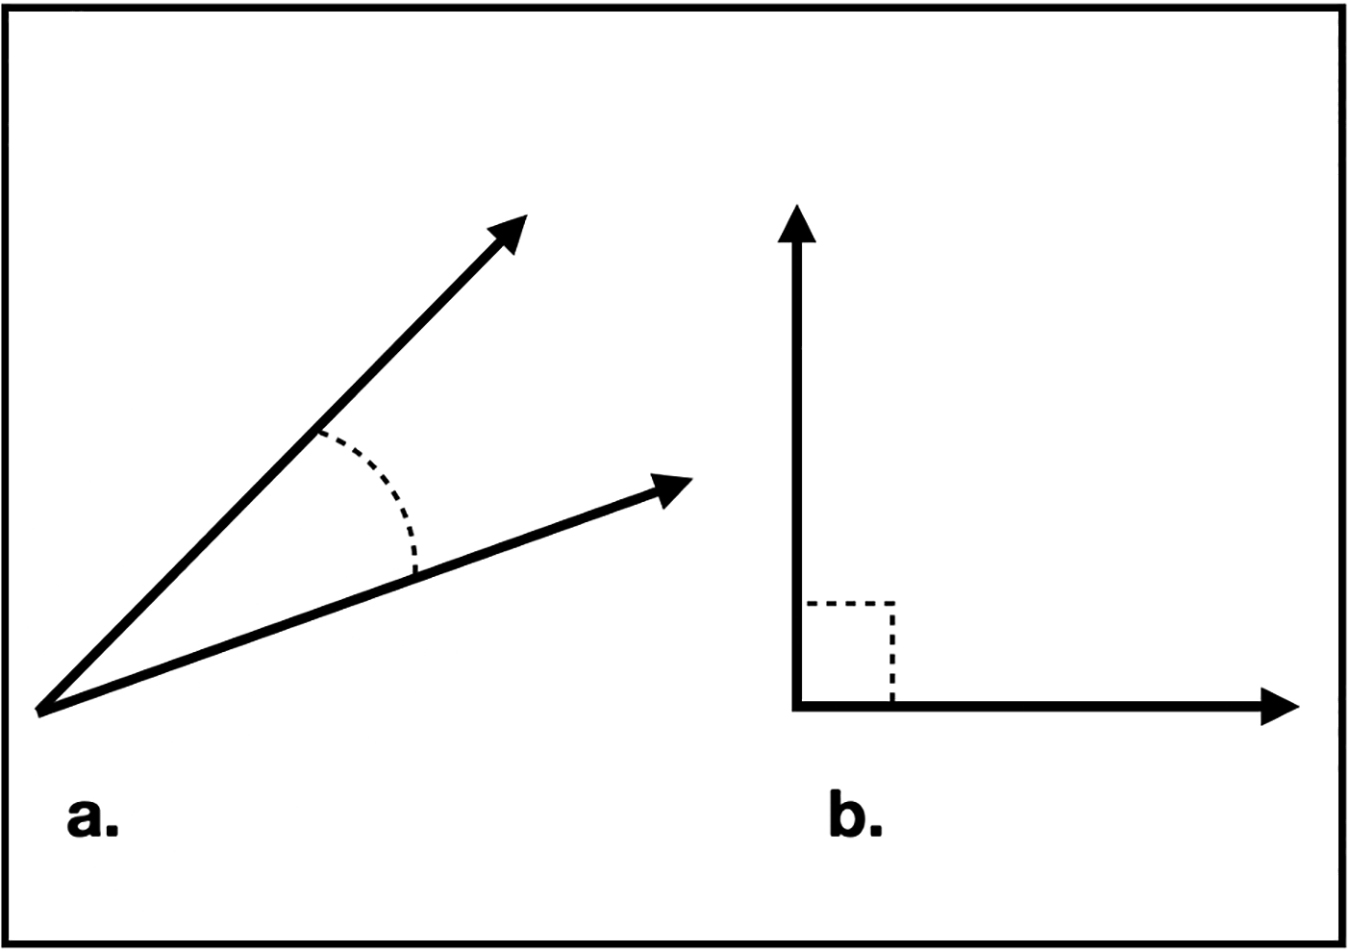 (a) Correlated and (b) orthogonal pairs of vectors. Figure by Nick Seaver.